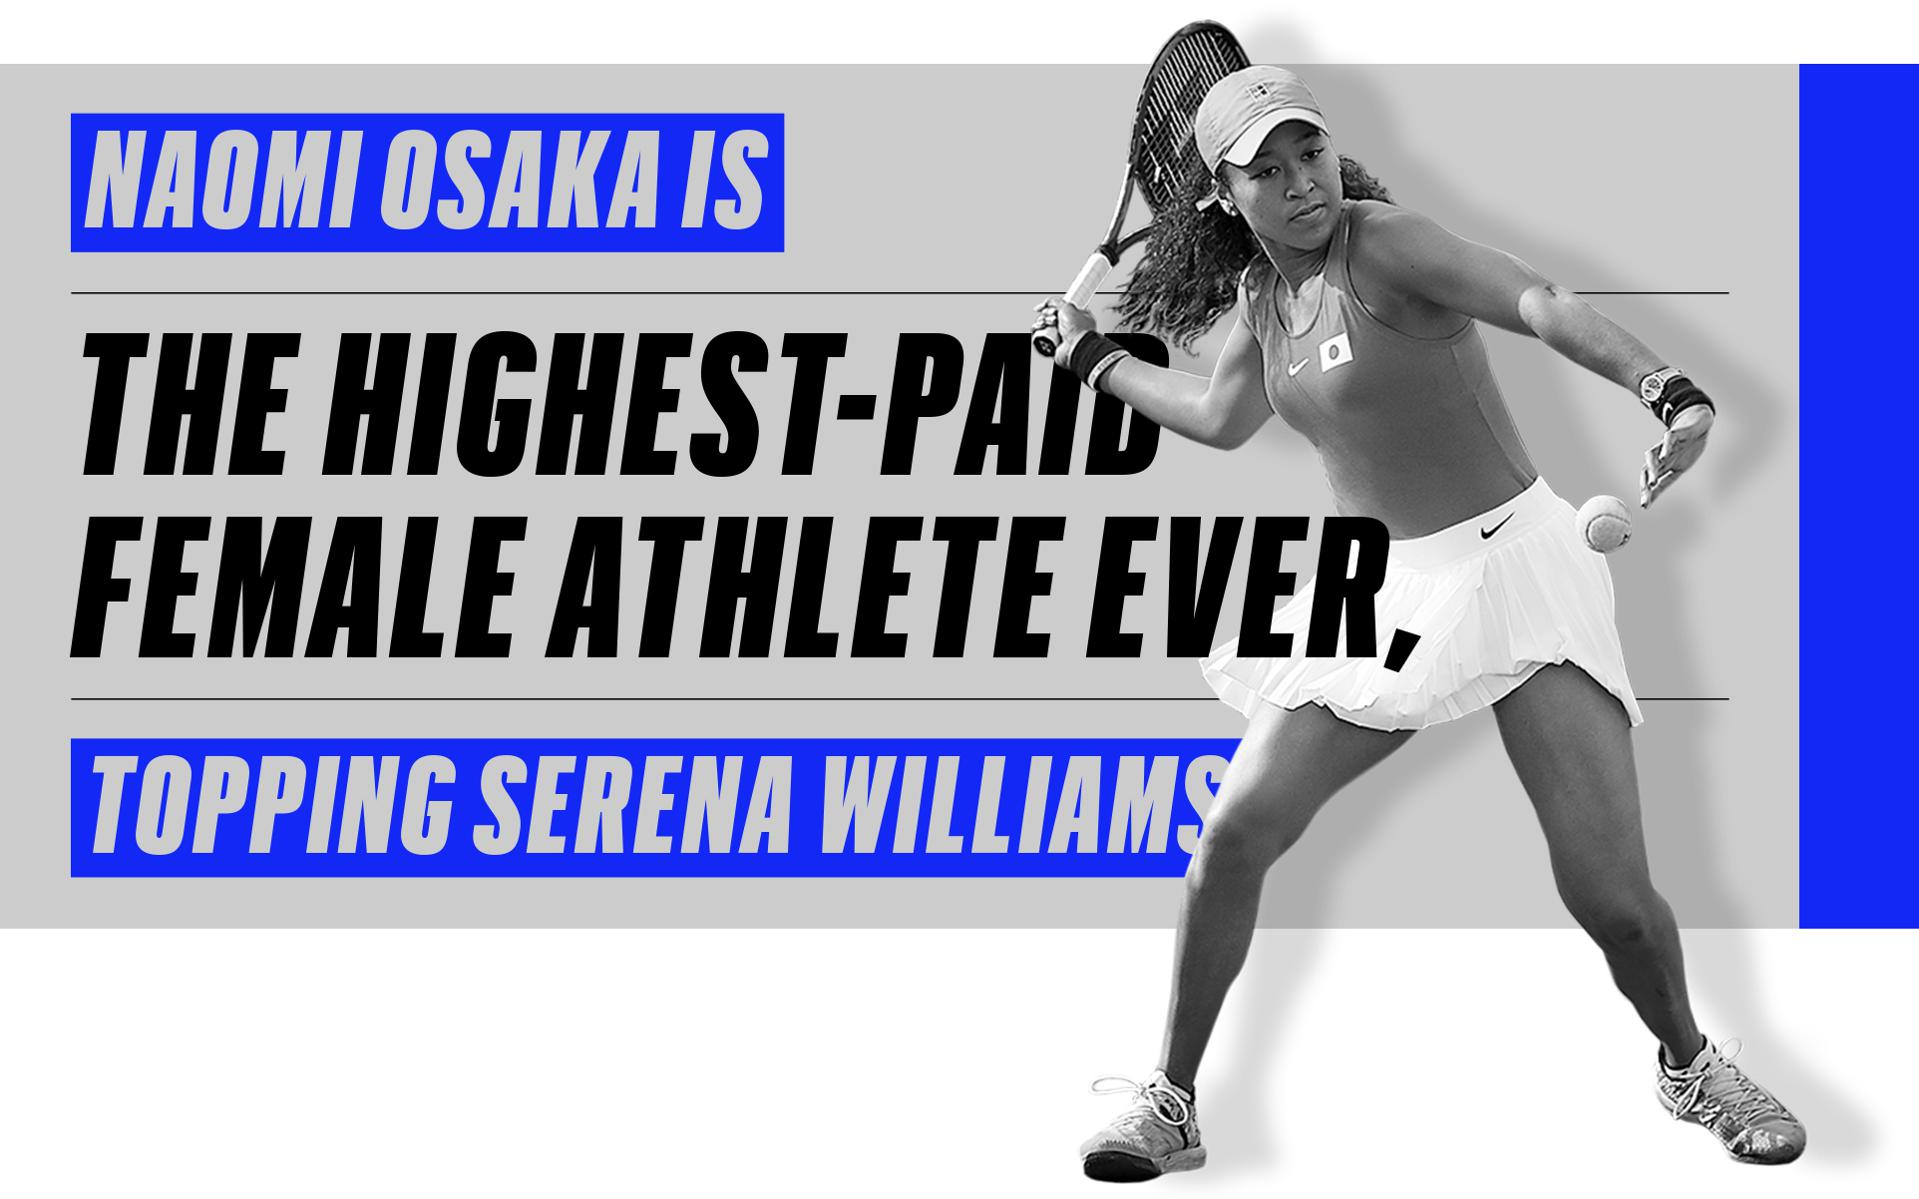 Naomi Osaka Is The Highest-Paid Female Athlete Ever, Topping Serena Williams